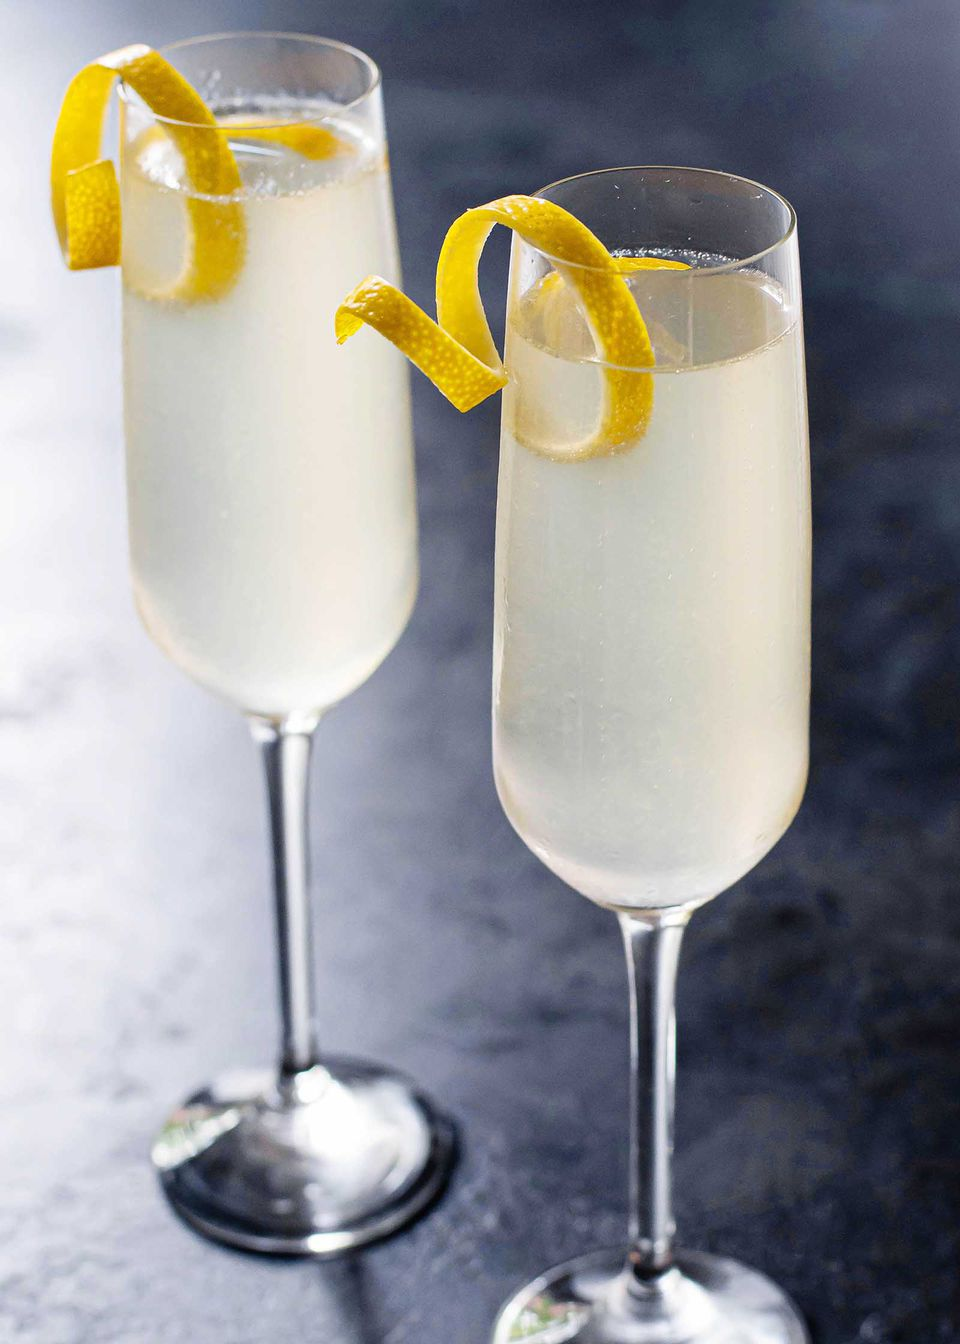 Champagne flute with French 75 brunch cocktail